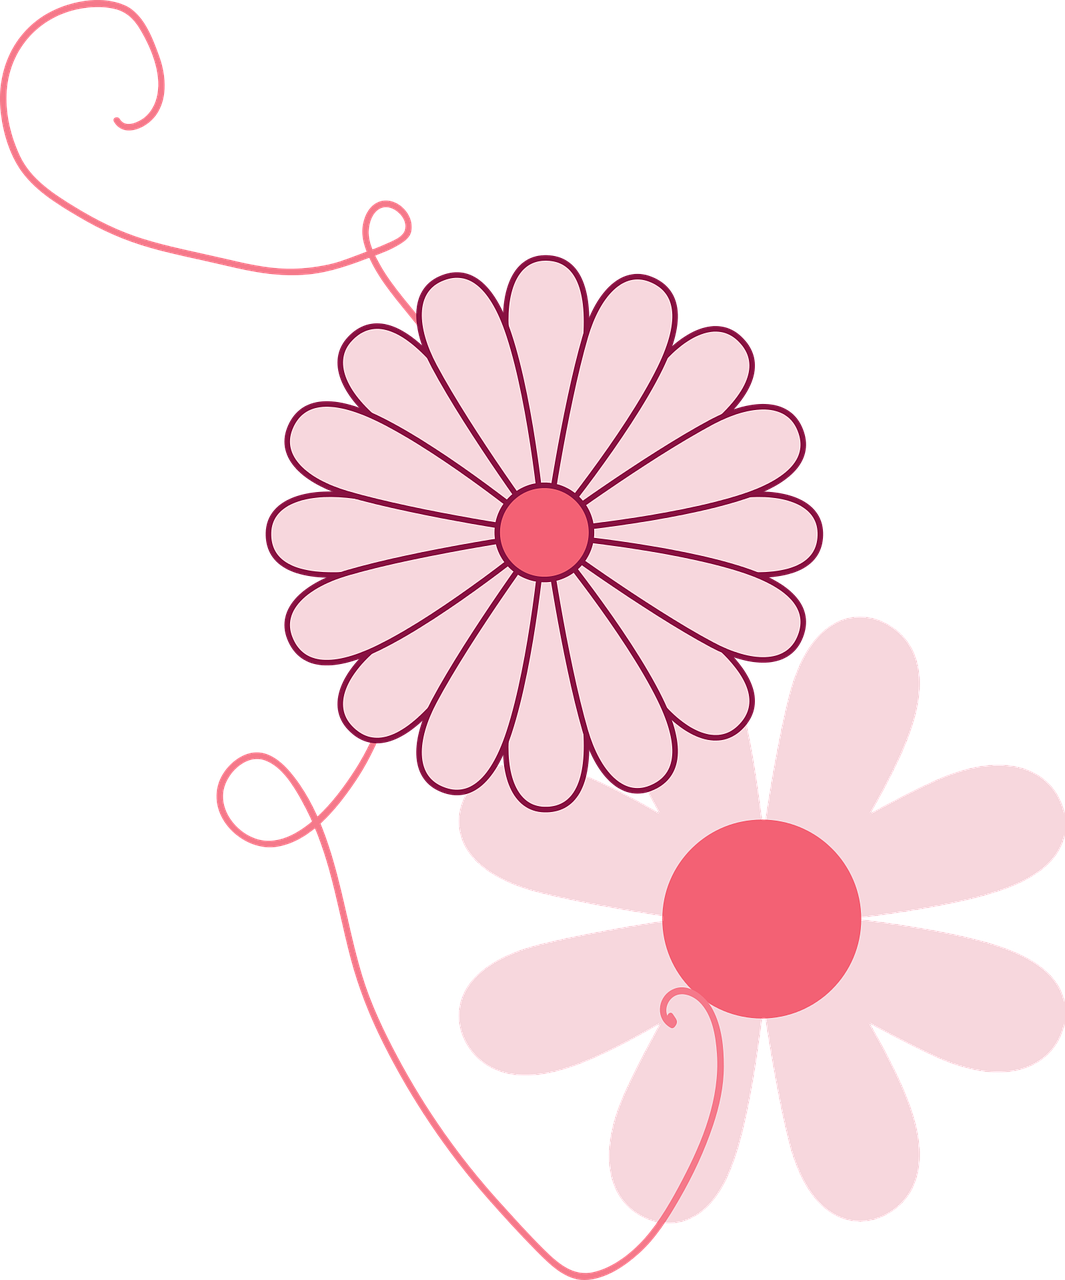 Flowers Spring Ornament Girly PNG.